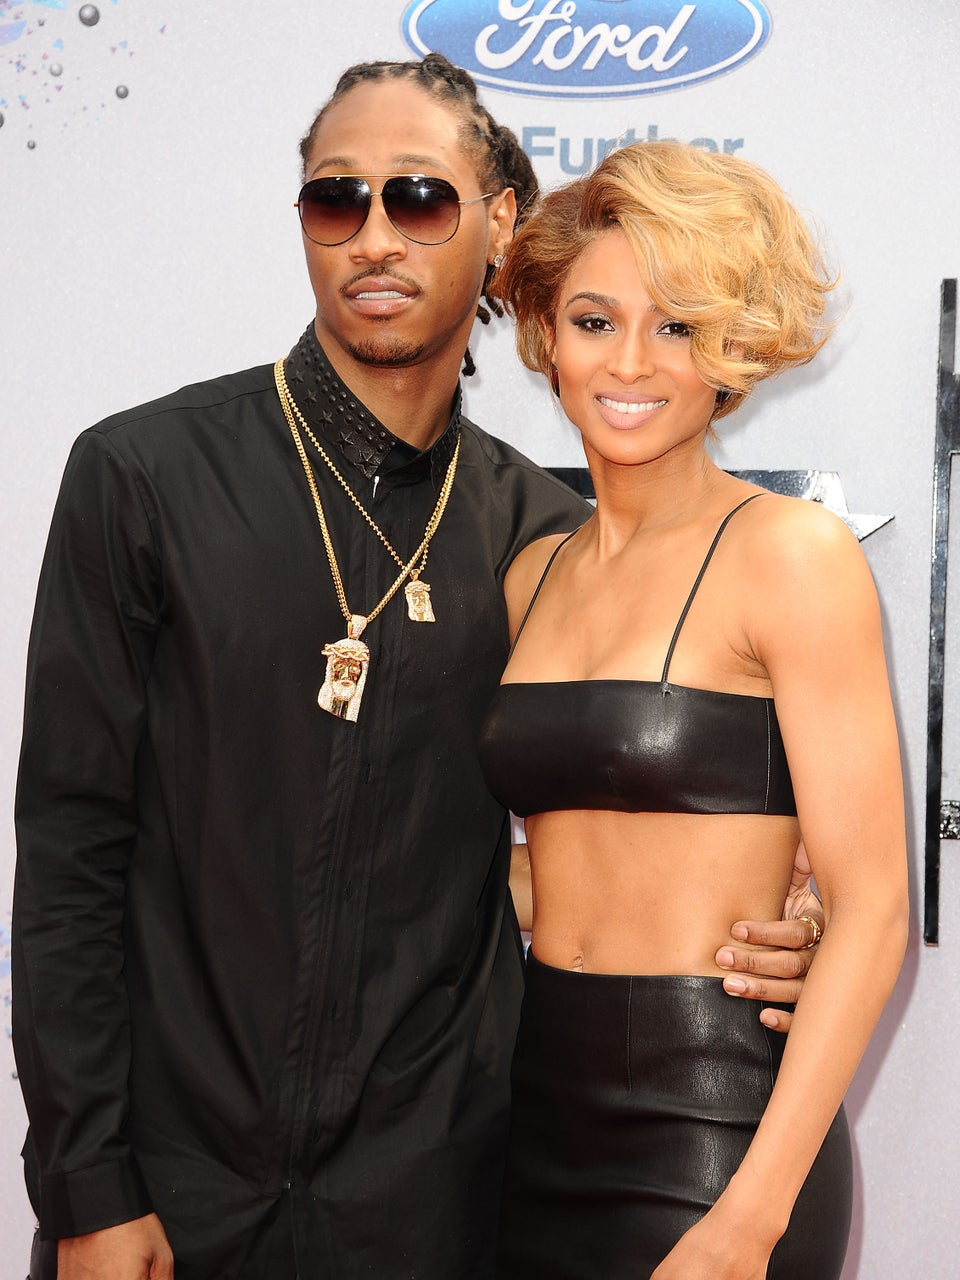 Black Women and Single Motherhood: Why Ciara's Lawsuit Against Future Matters